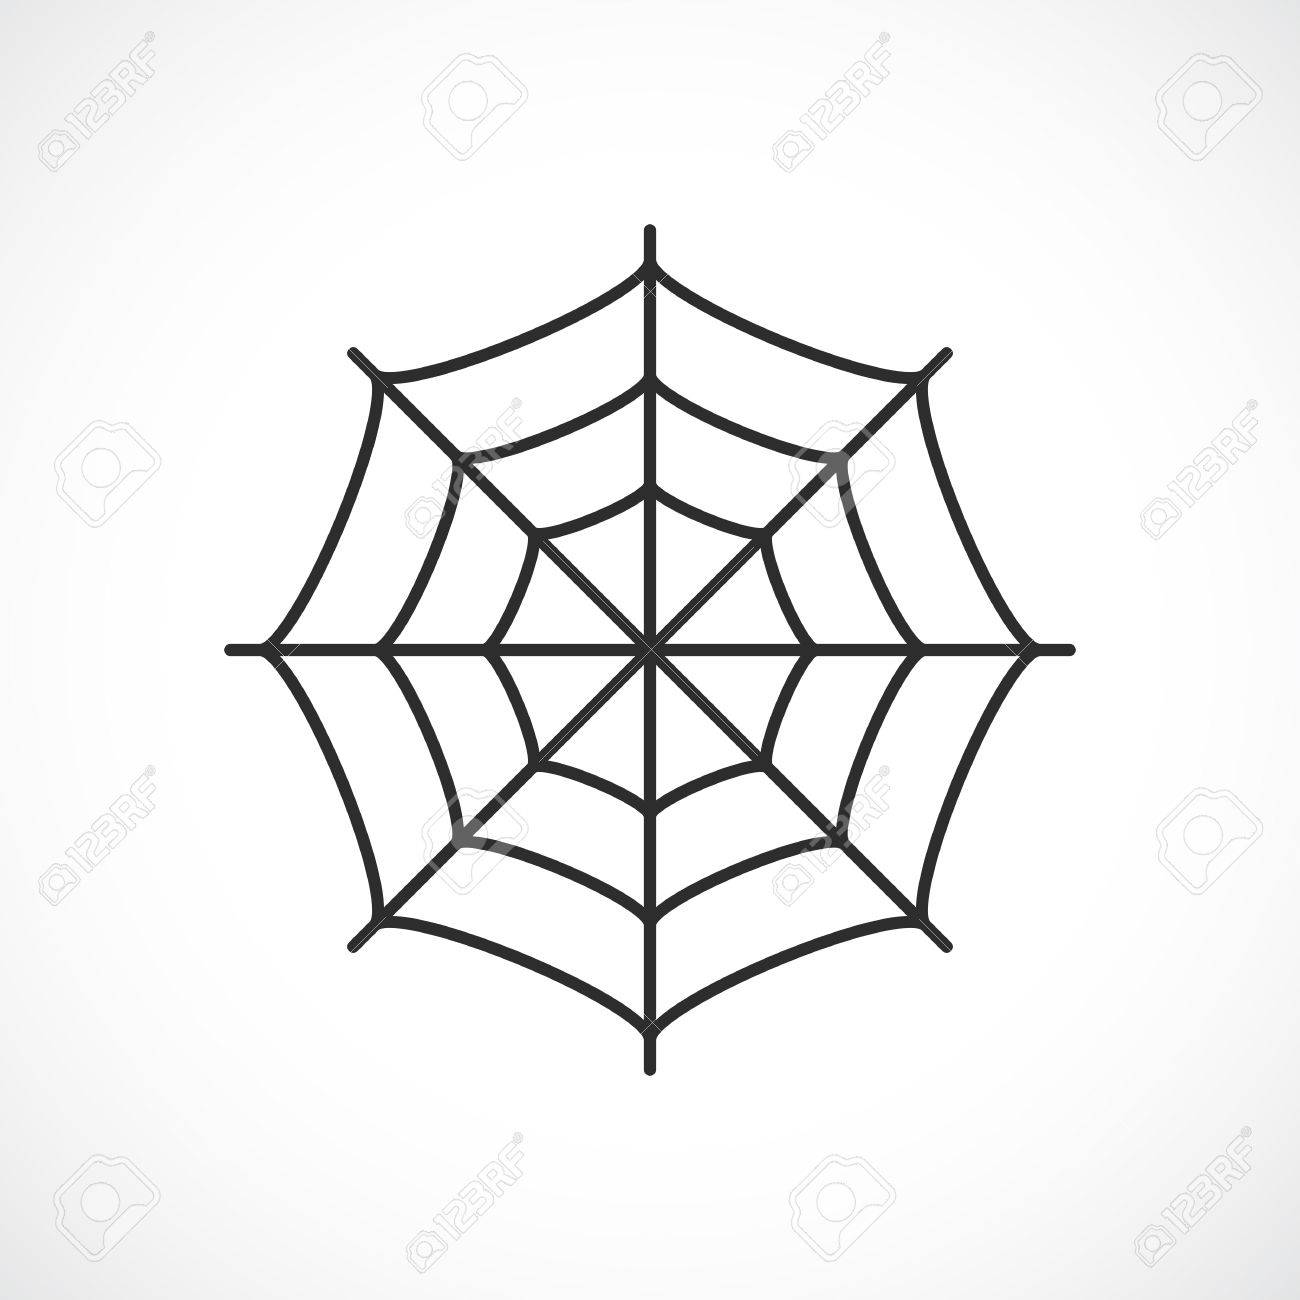 spider web vector pictogram royalty free cliparts vectors and rh 123rf com spider web vector free spider web vector free download